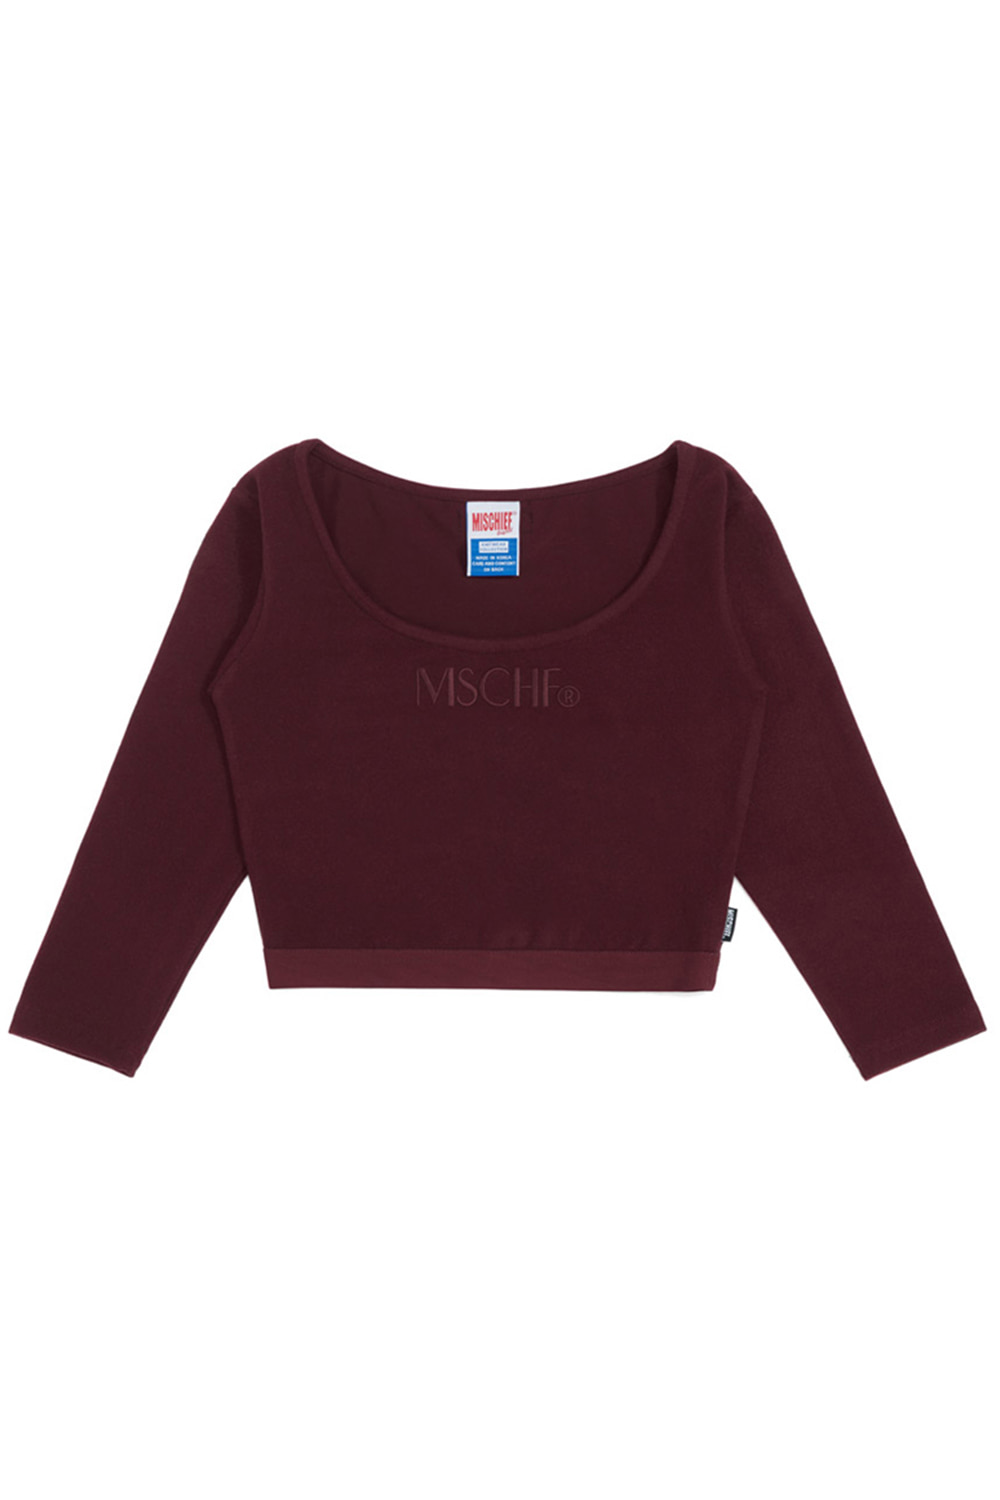 FITTED WAISTBAND_burgundy